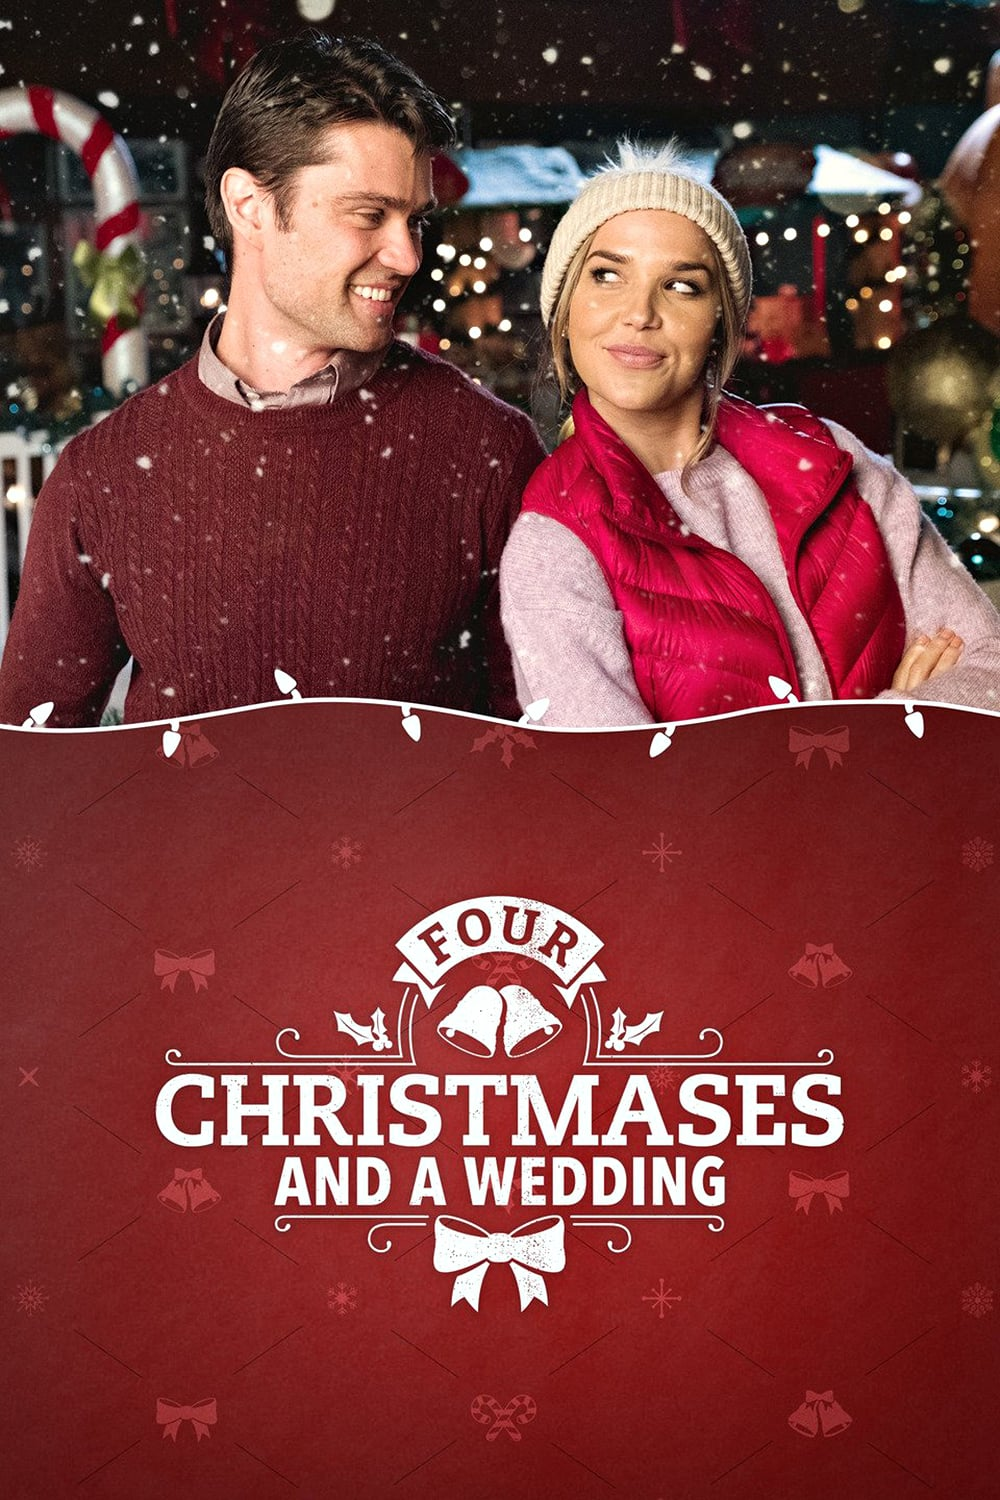 """Poster for the movie """"Four Christmases and a Wedding"""""""